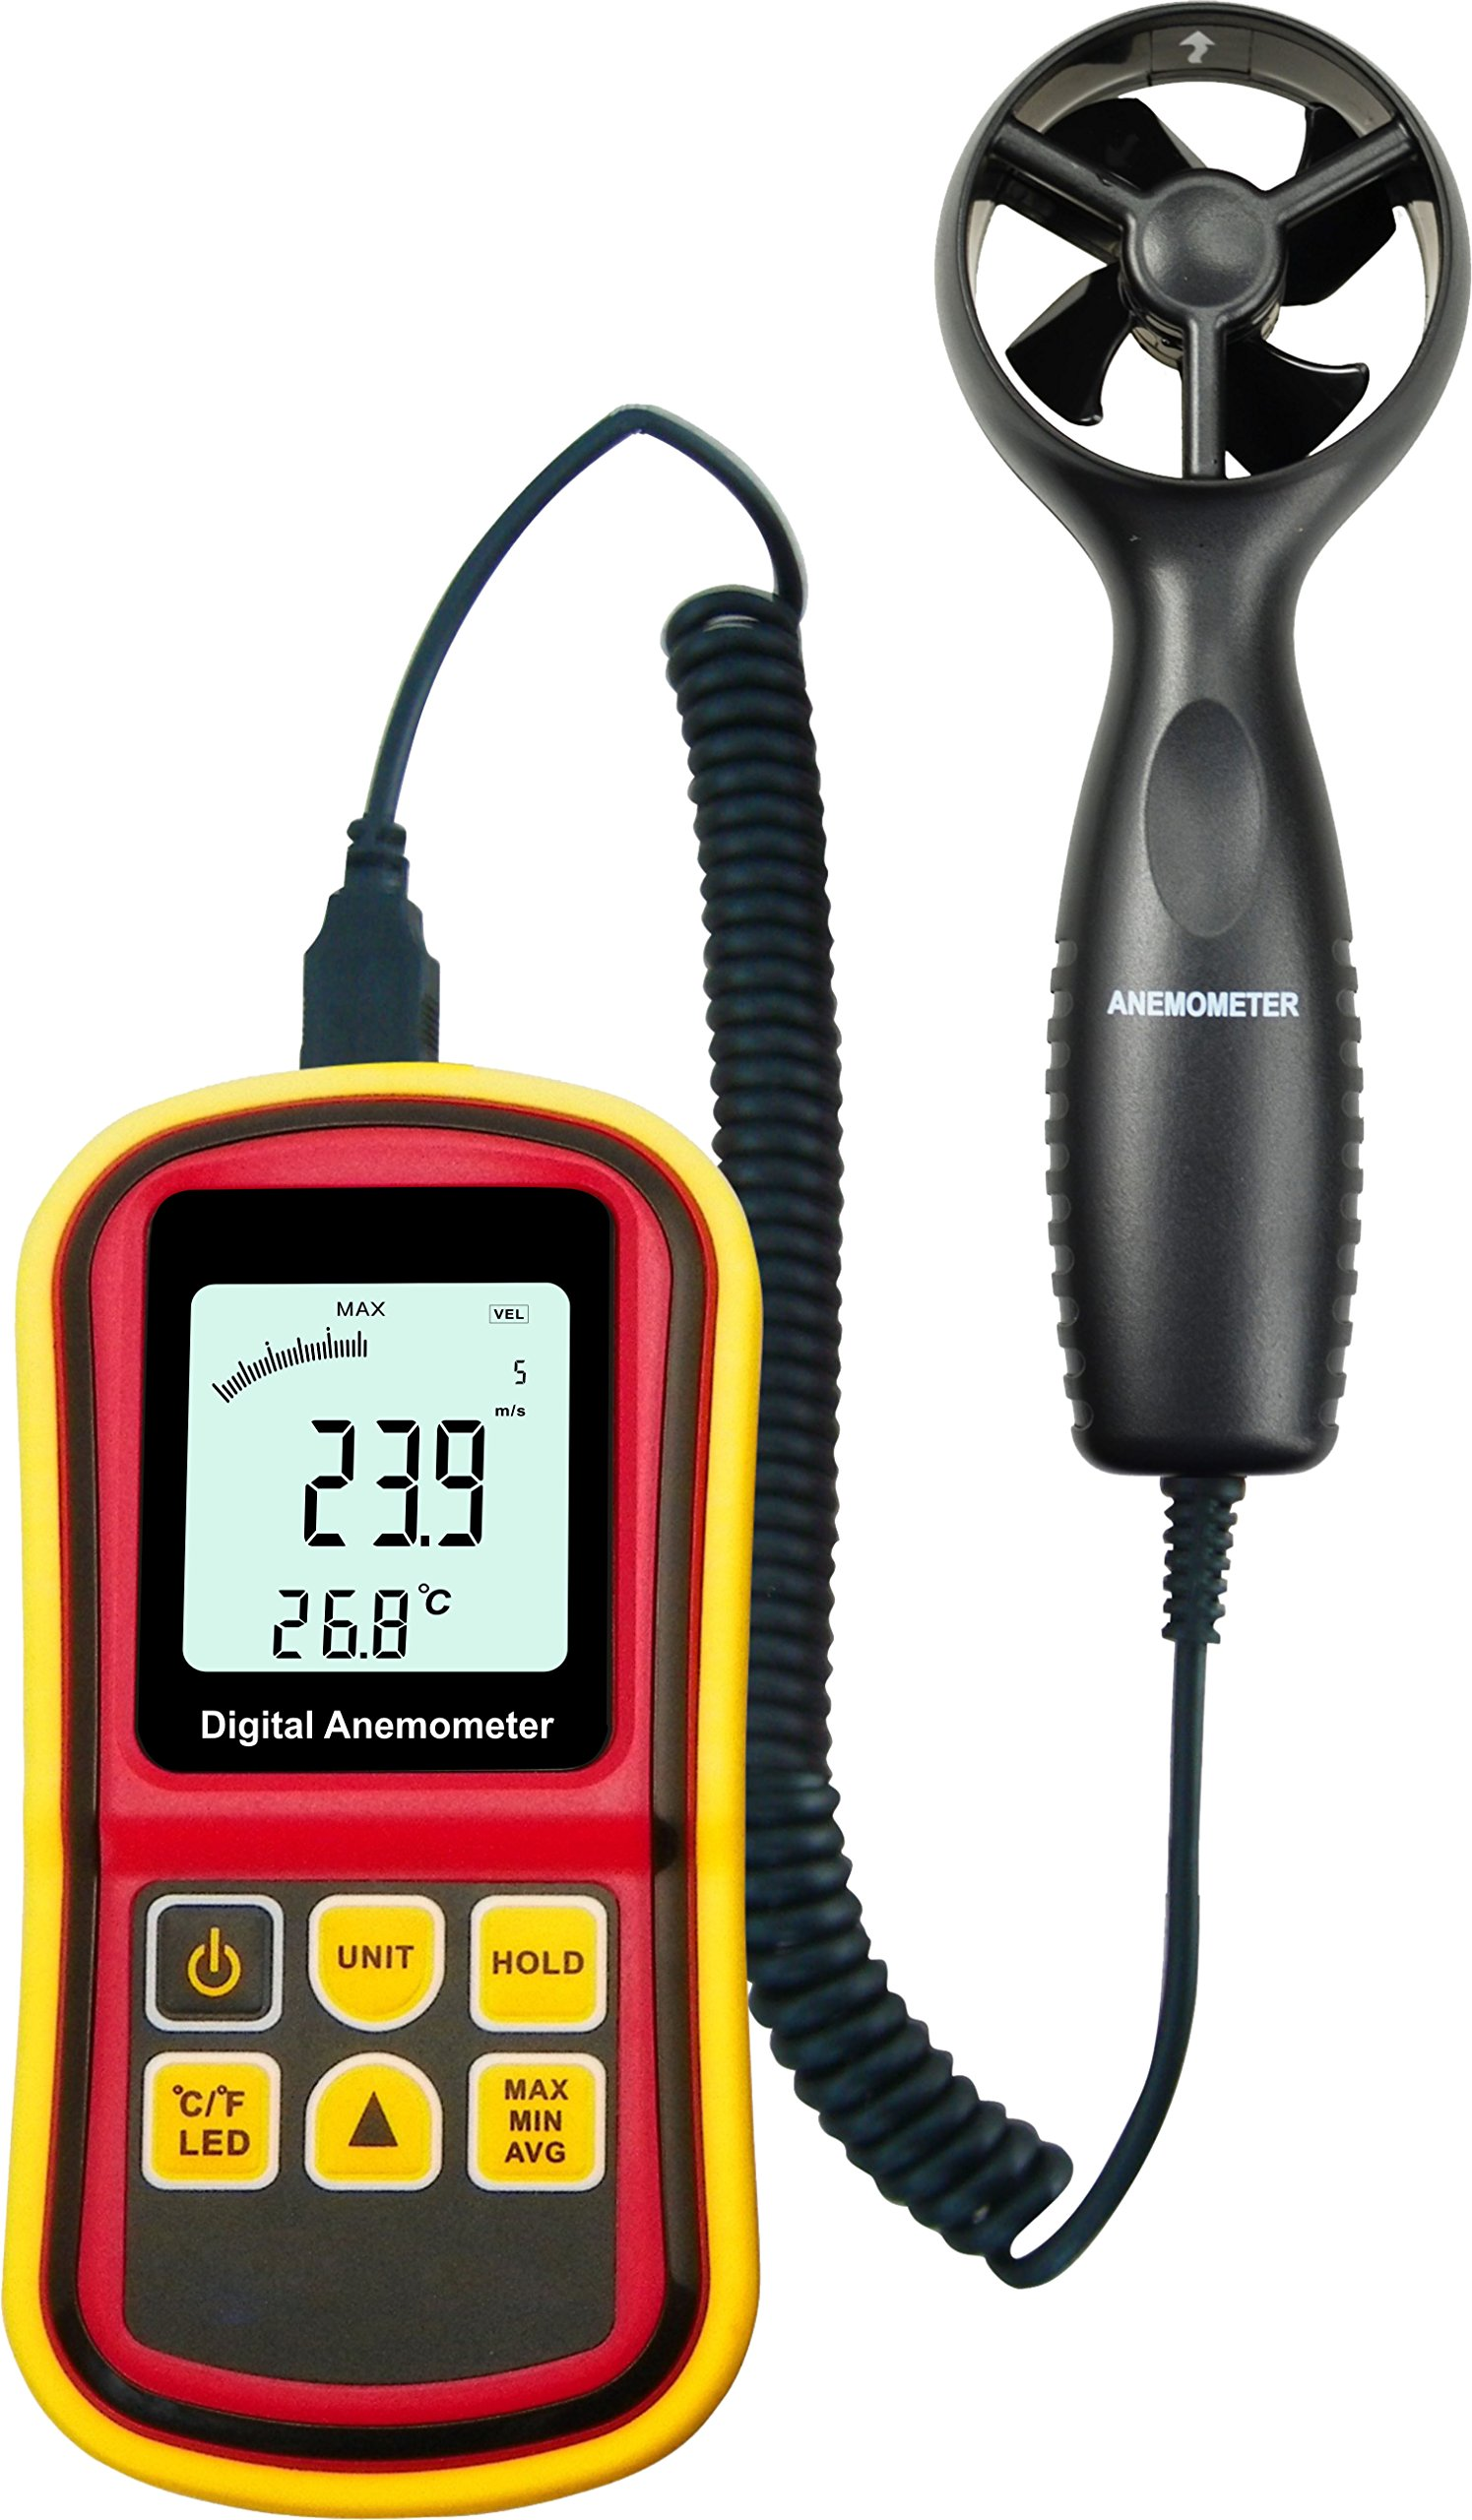 Anemometer 45m/s (88MPH) LCD Digital Thermometer Electronic Hand-held Wind Speed Gauge Meter 8901BZ